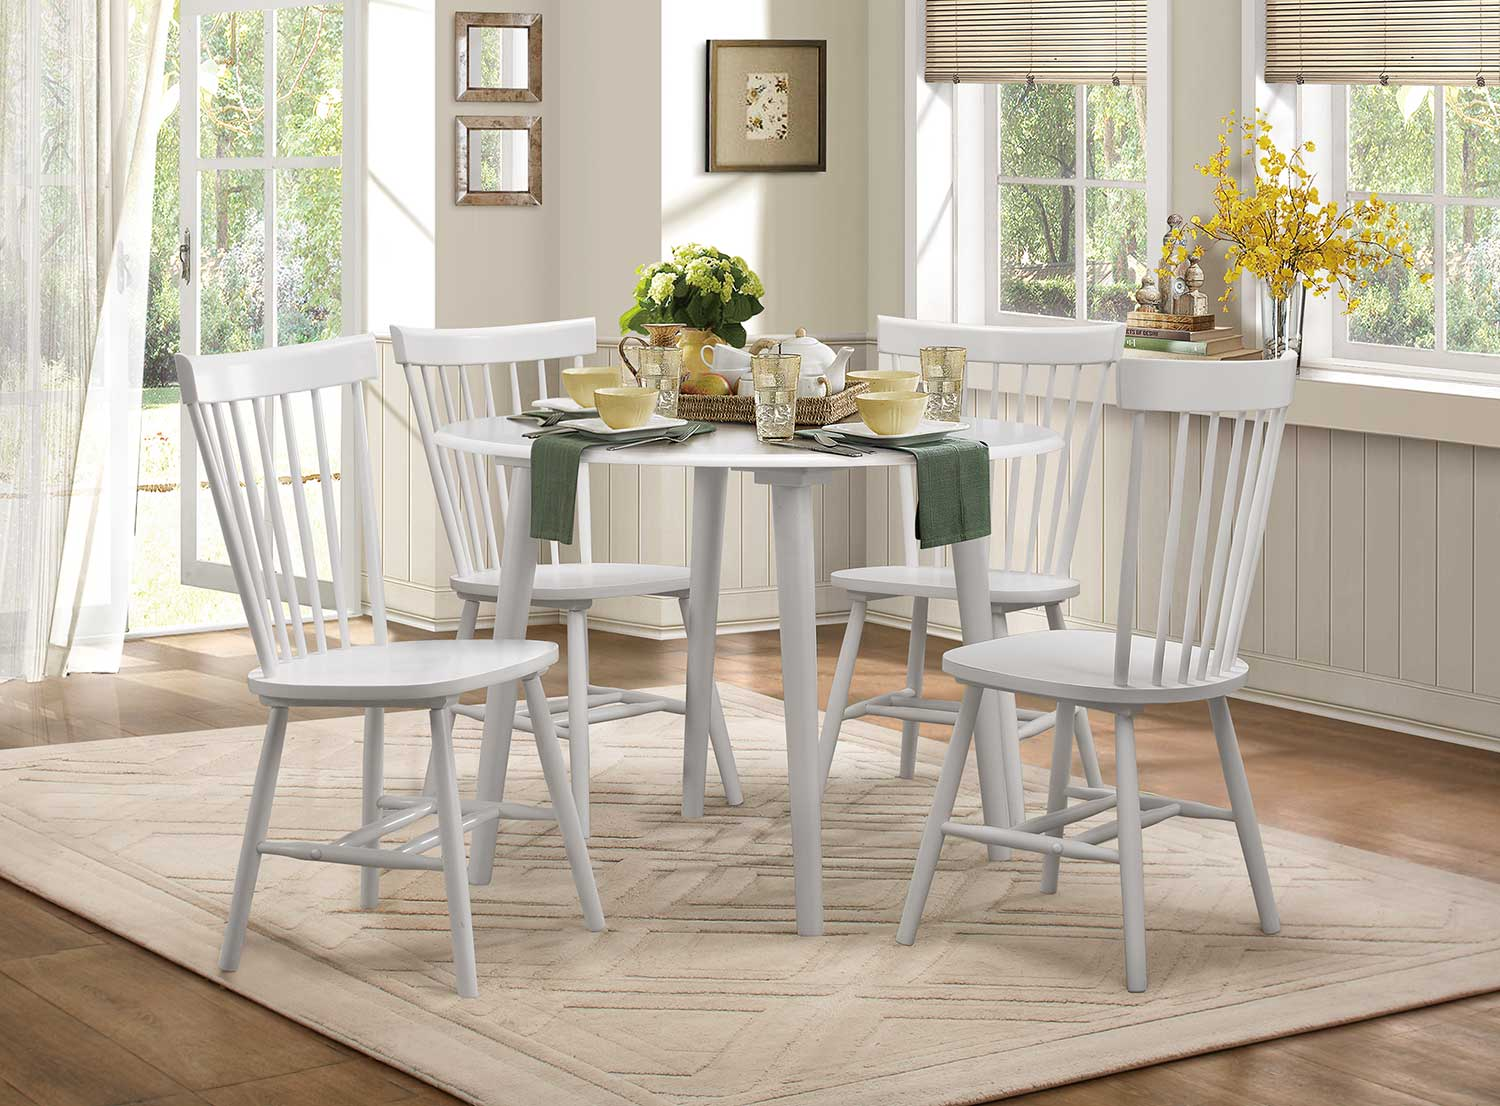 Homelegance April Round Dining Set - White